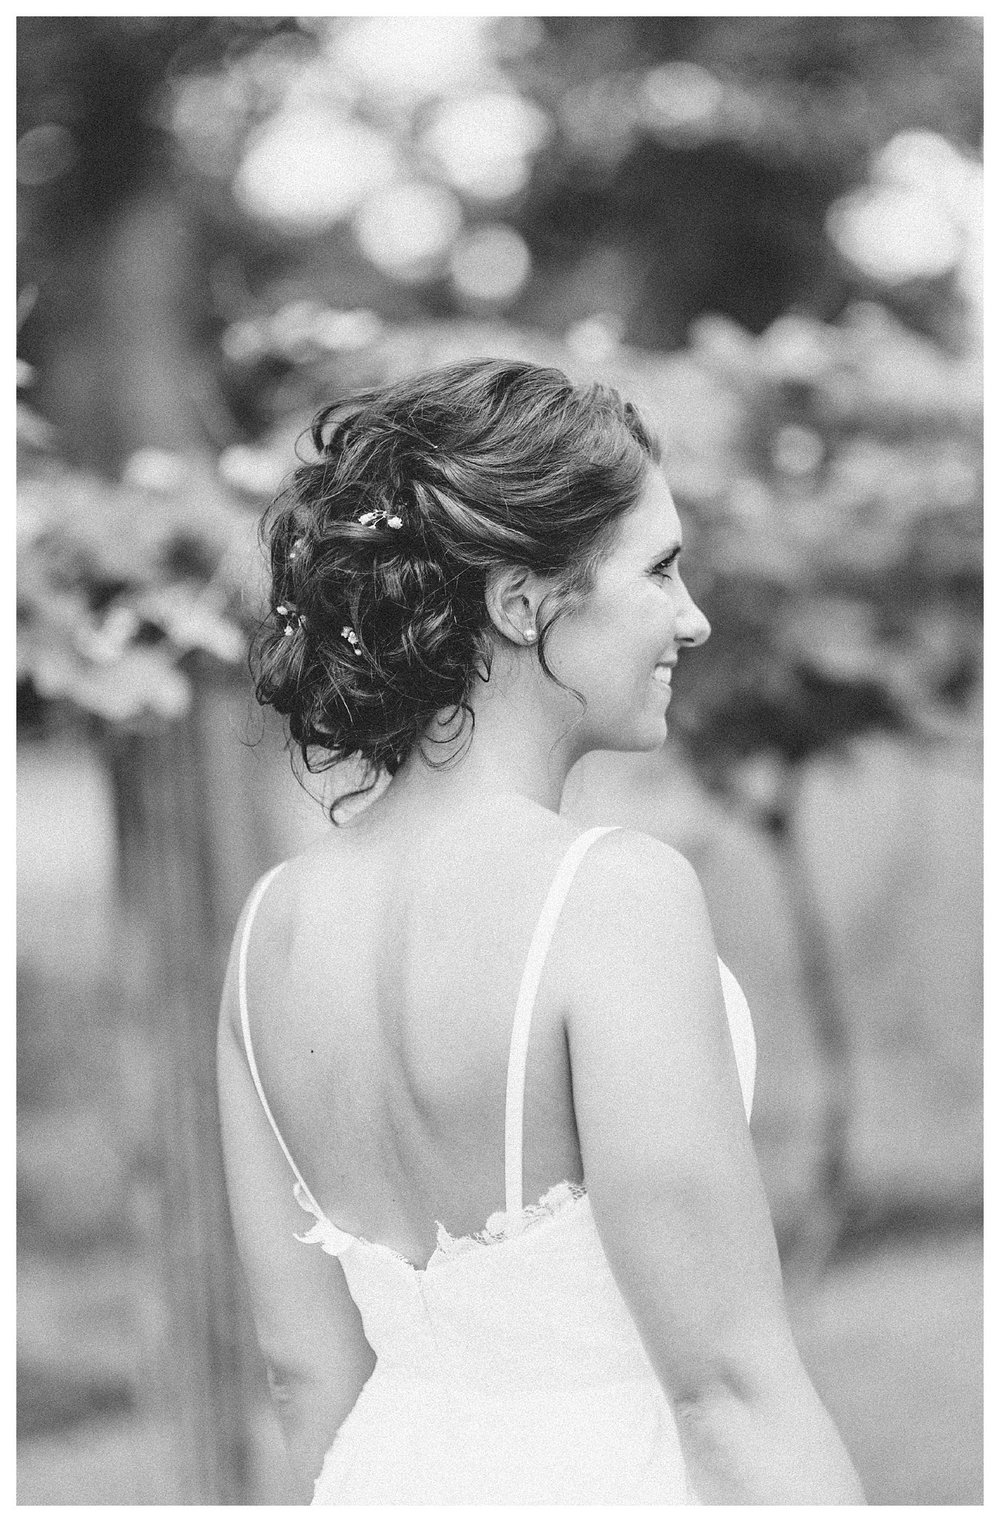 everleigh-photography.-cincinnati-wedding-photographer-at-the-barn-winery-29